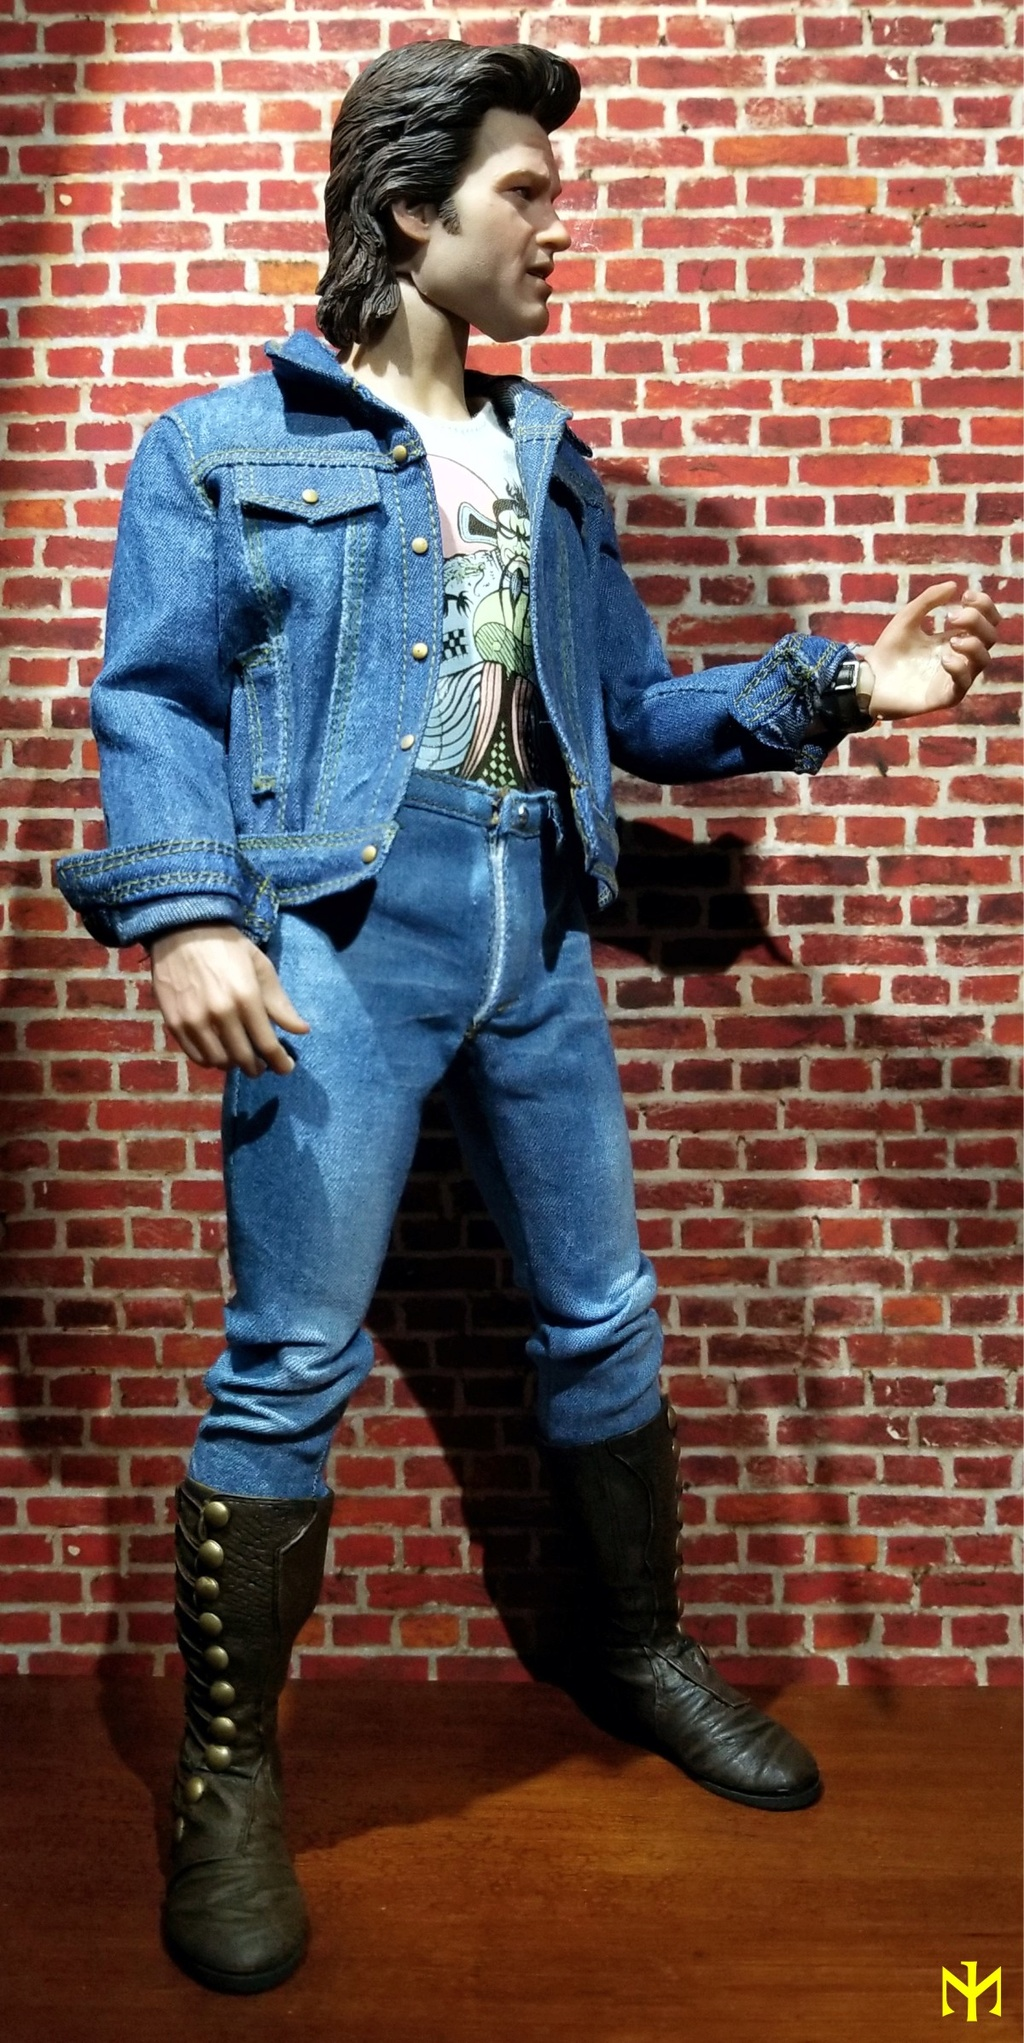 bigtroubleinlittlechina - Sideshow Jack Burton Detailed Review Sscjb011